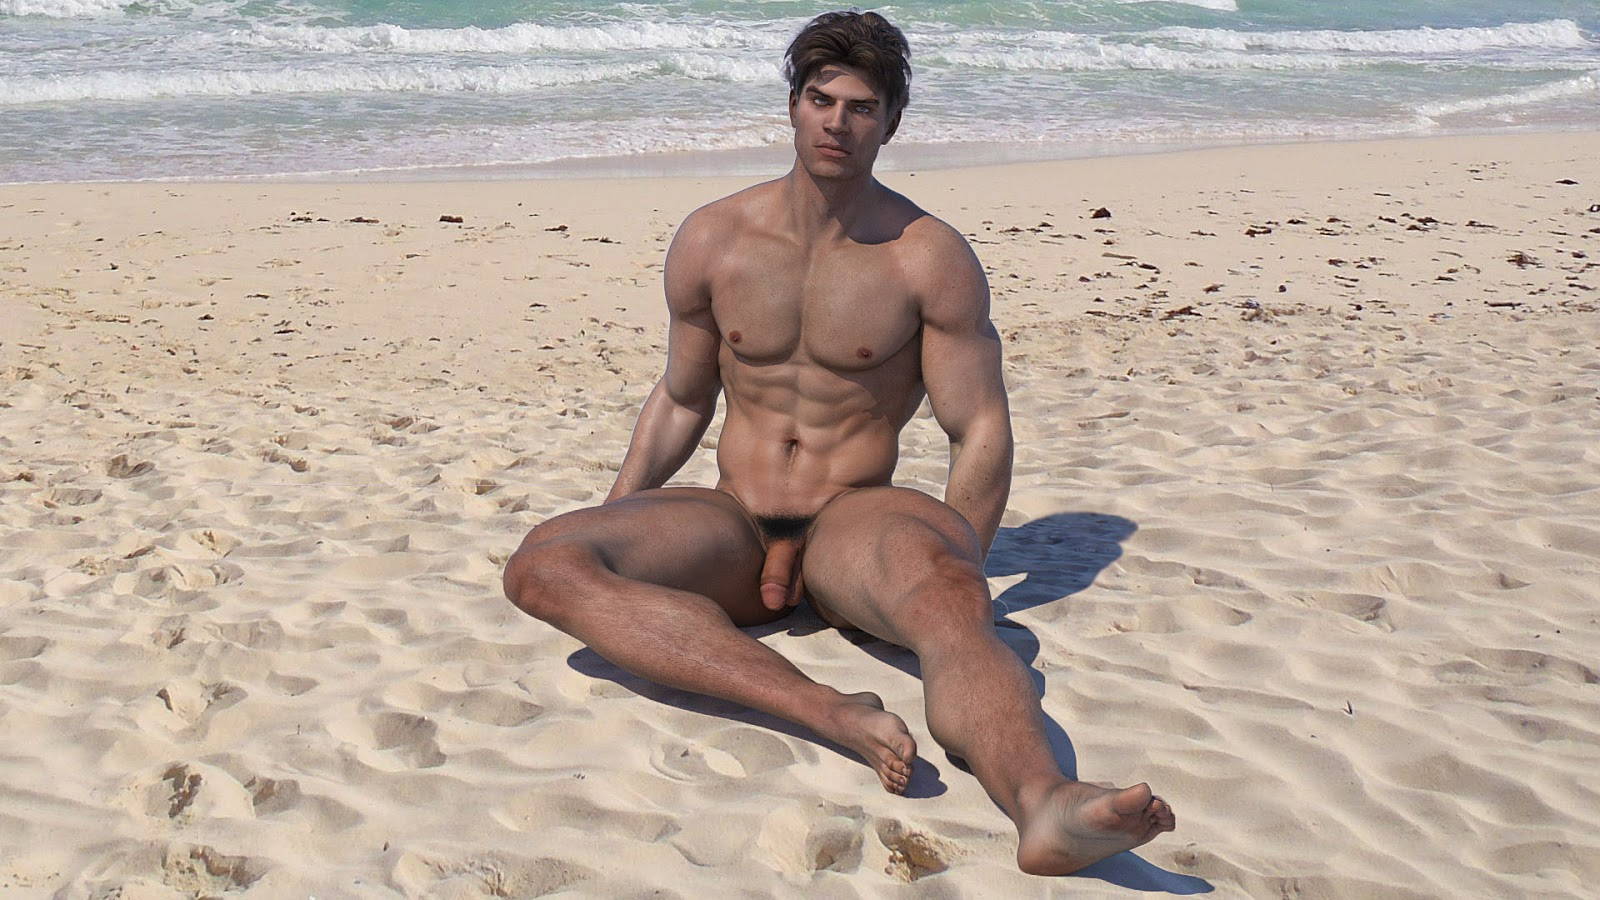 Beach nudist black men on